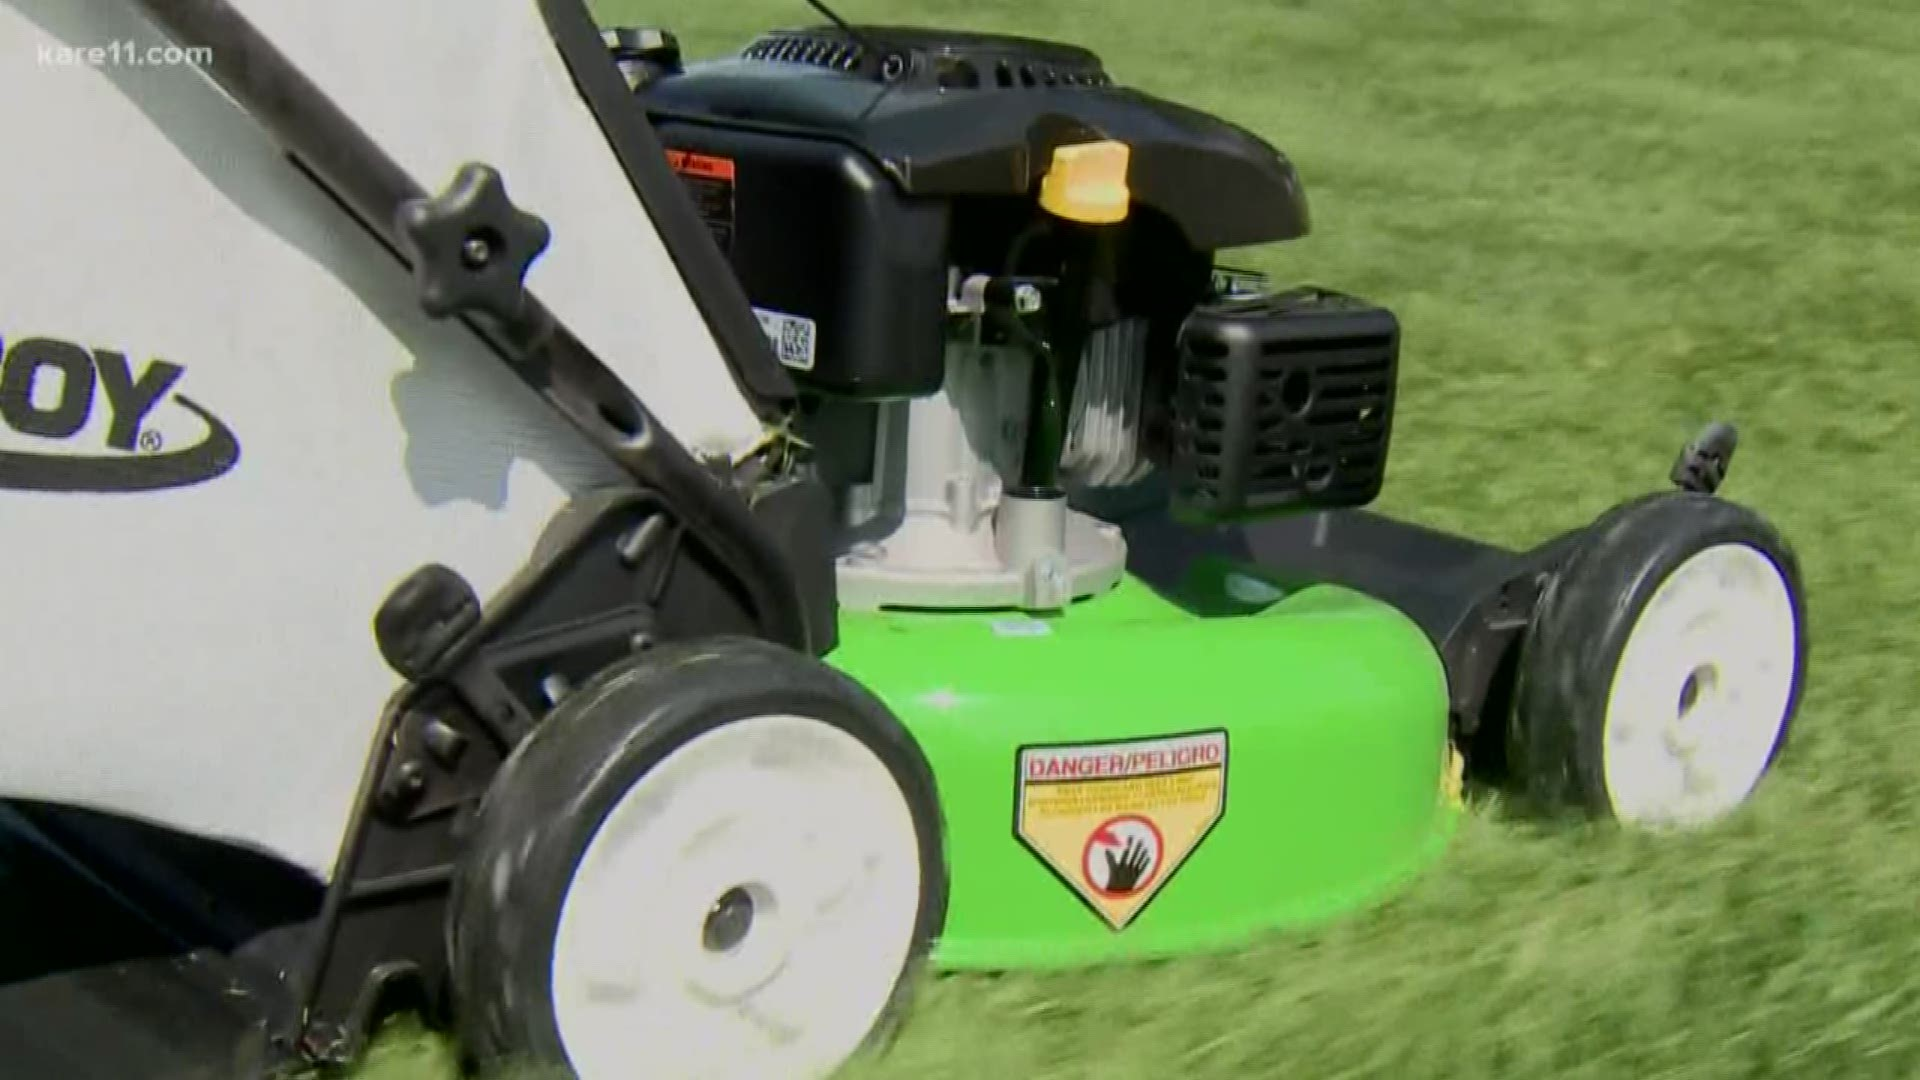 Local Group Of Lawn Care Companies Pledge To Mow Medical Staff S Lawns Free Of Charge Kare11 Com